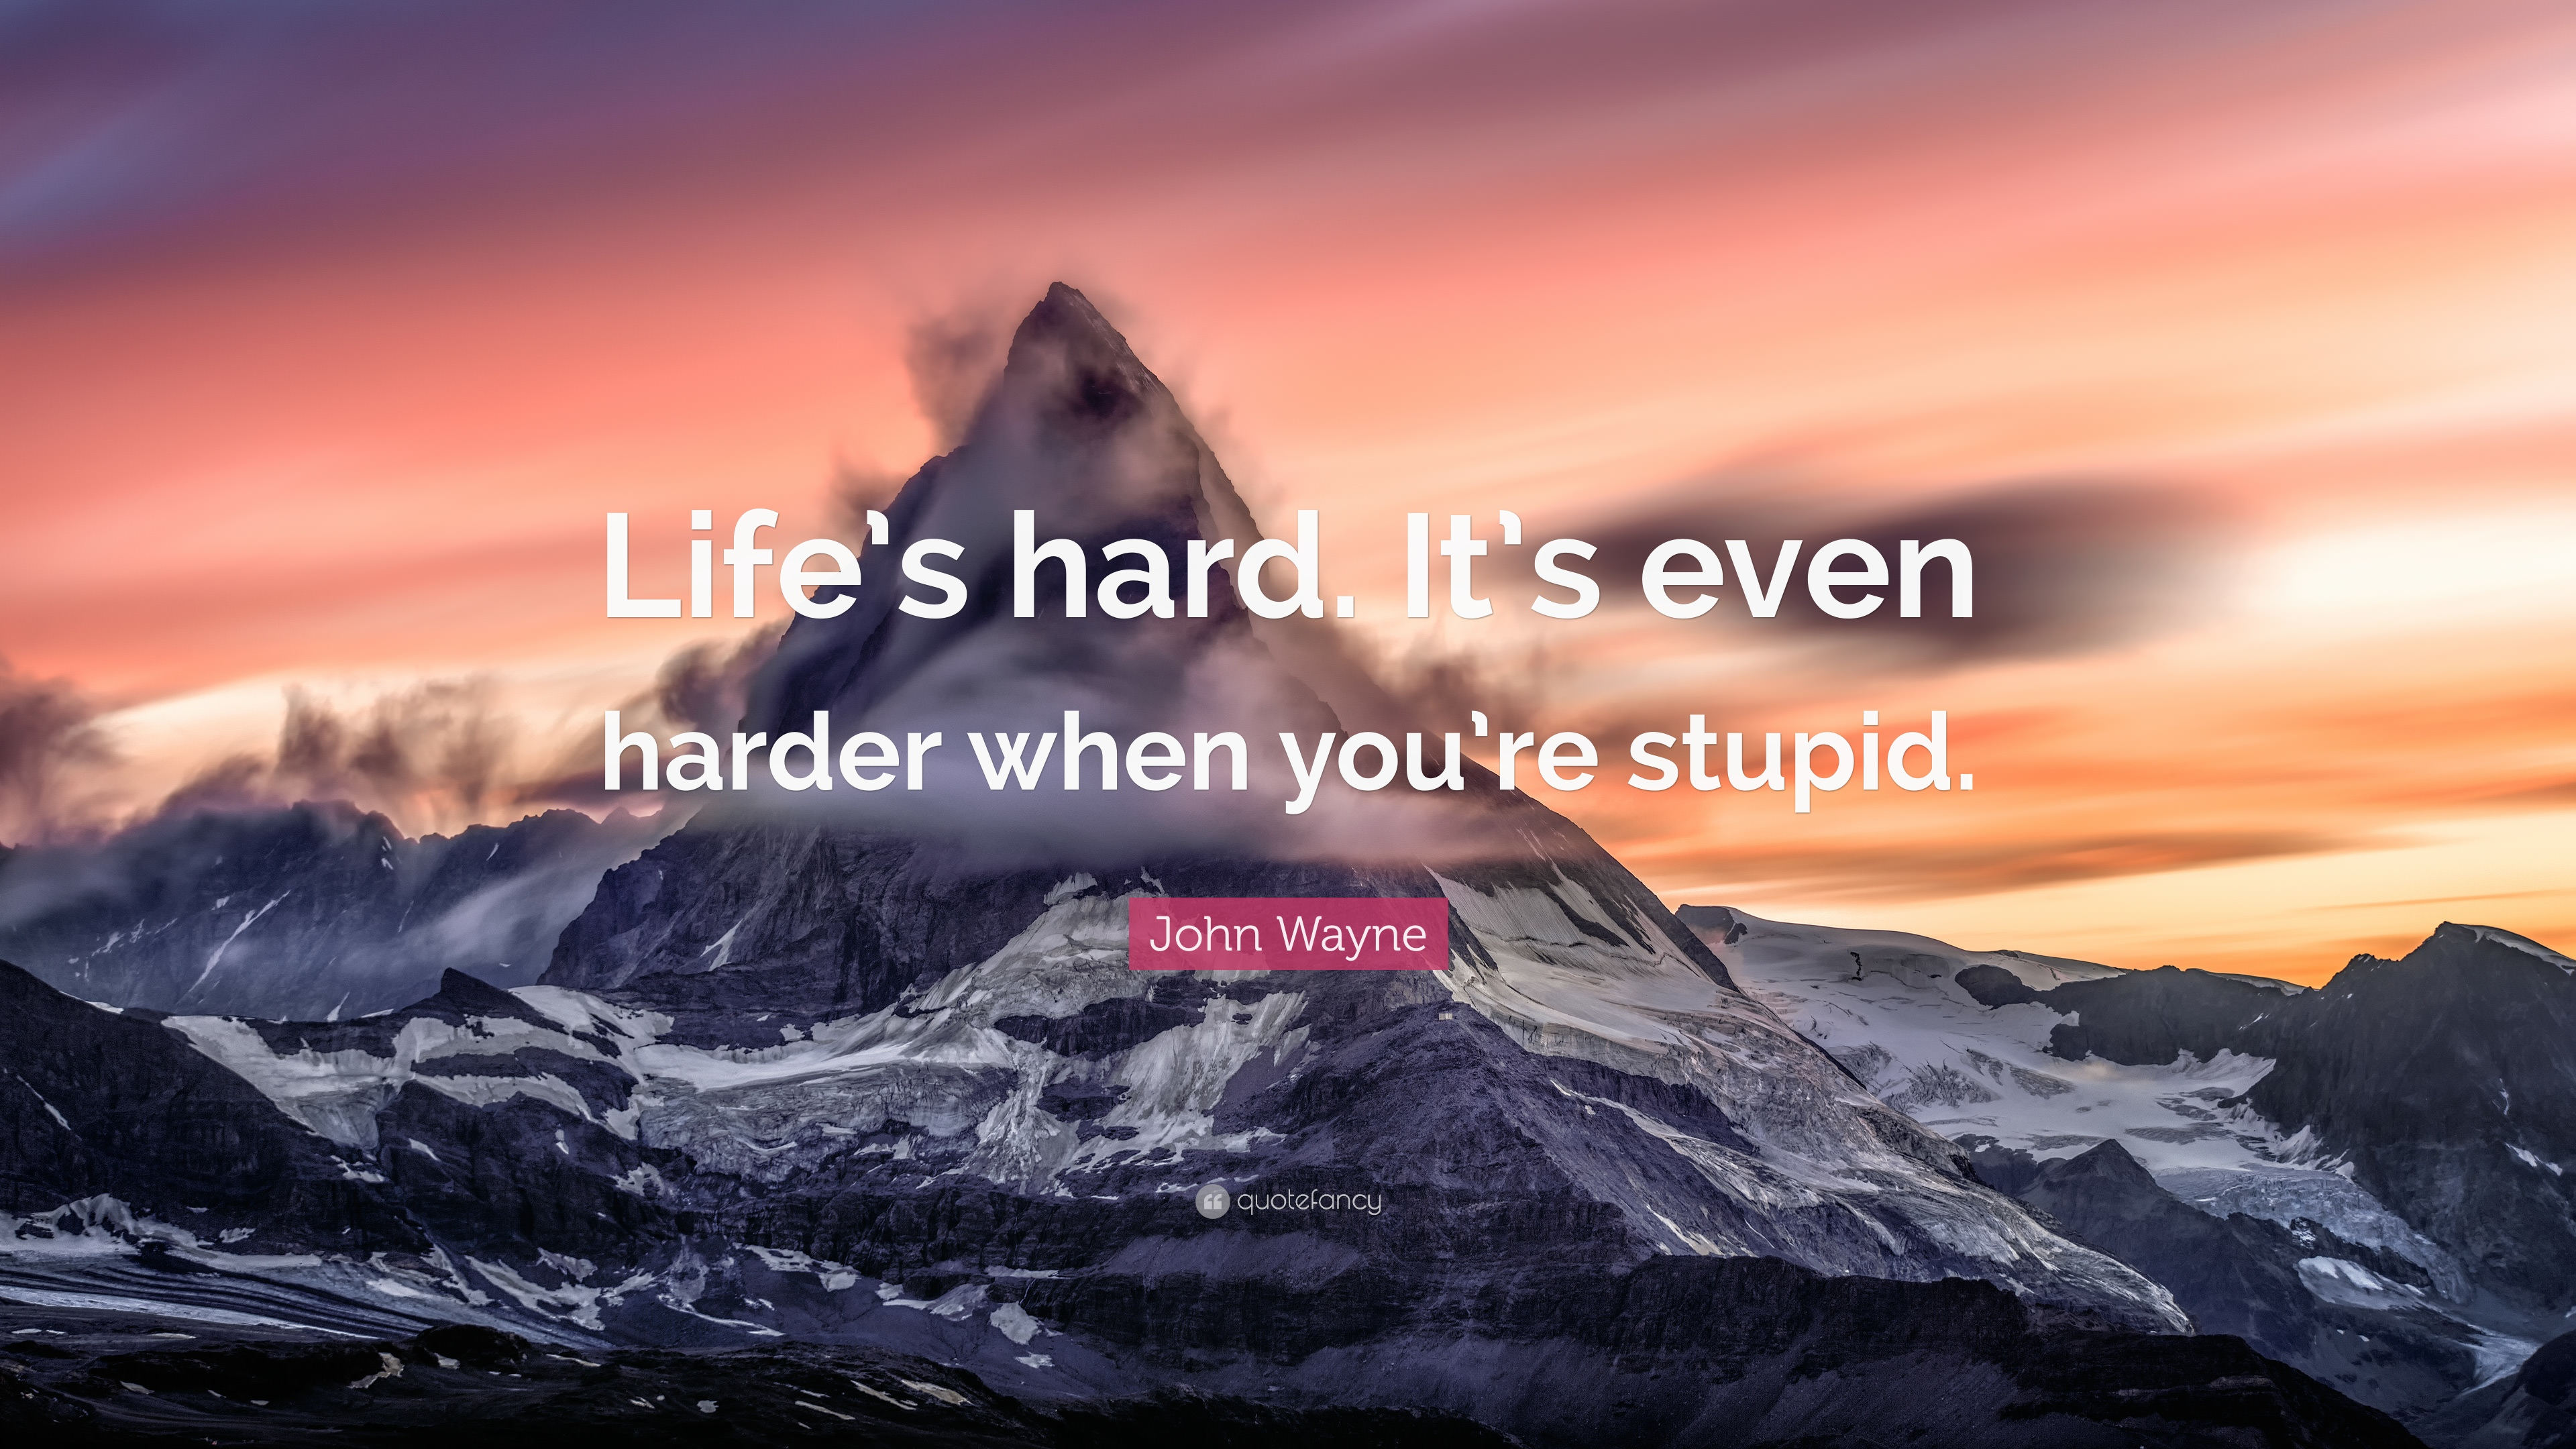 John Wayne Quote: U201cLifeu0027s Hard. Itu0027s Even Harder When Youu0027re Stupid